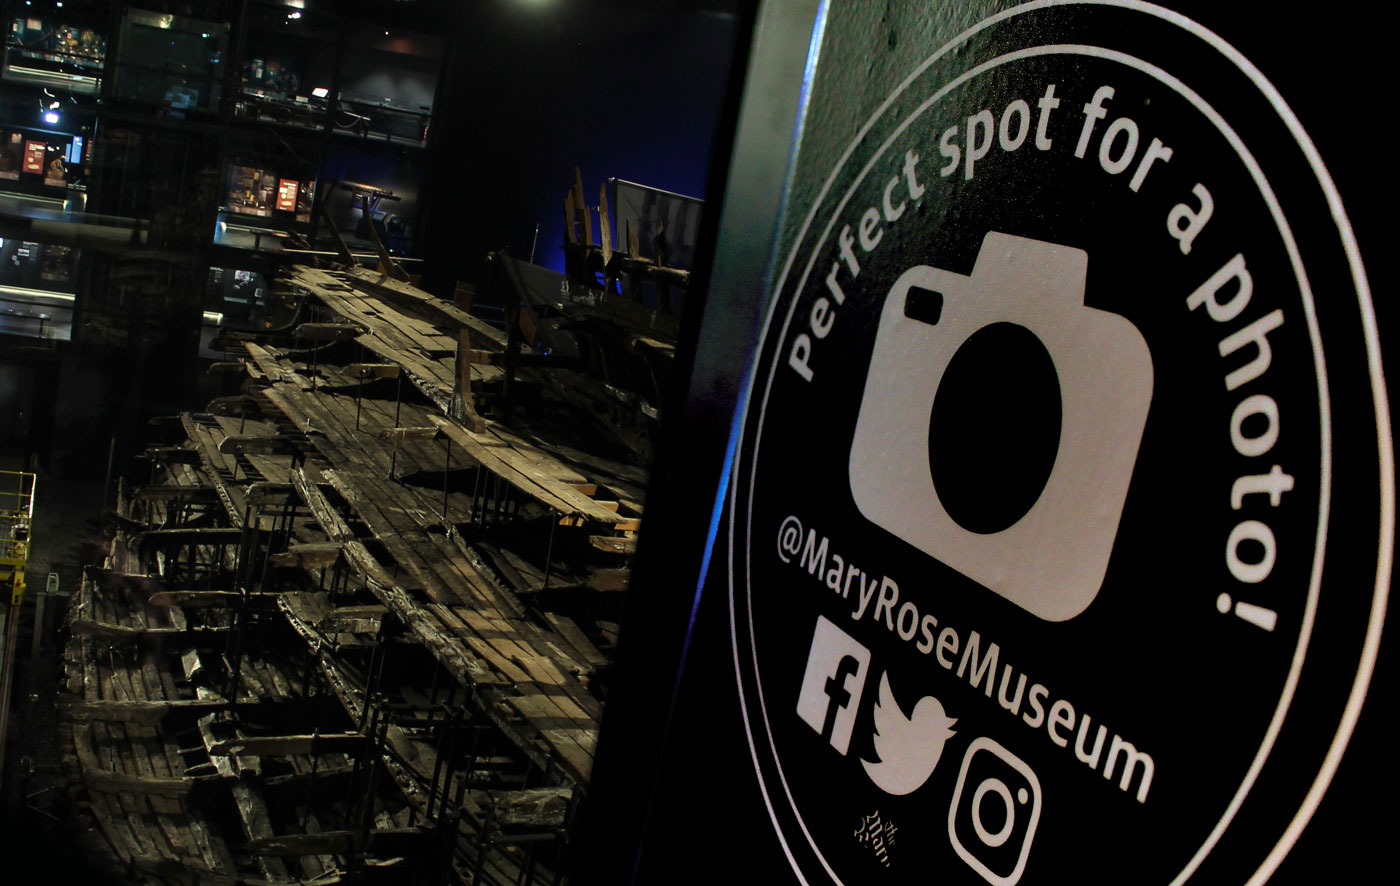 Photo spot at The Mary Rose